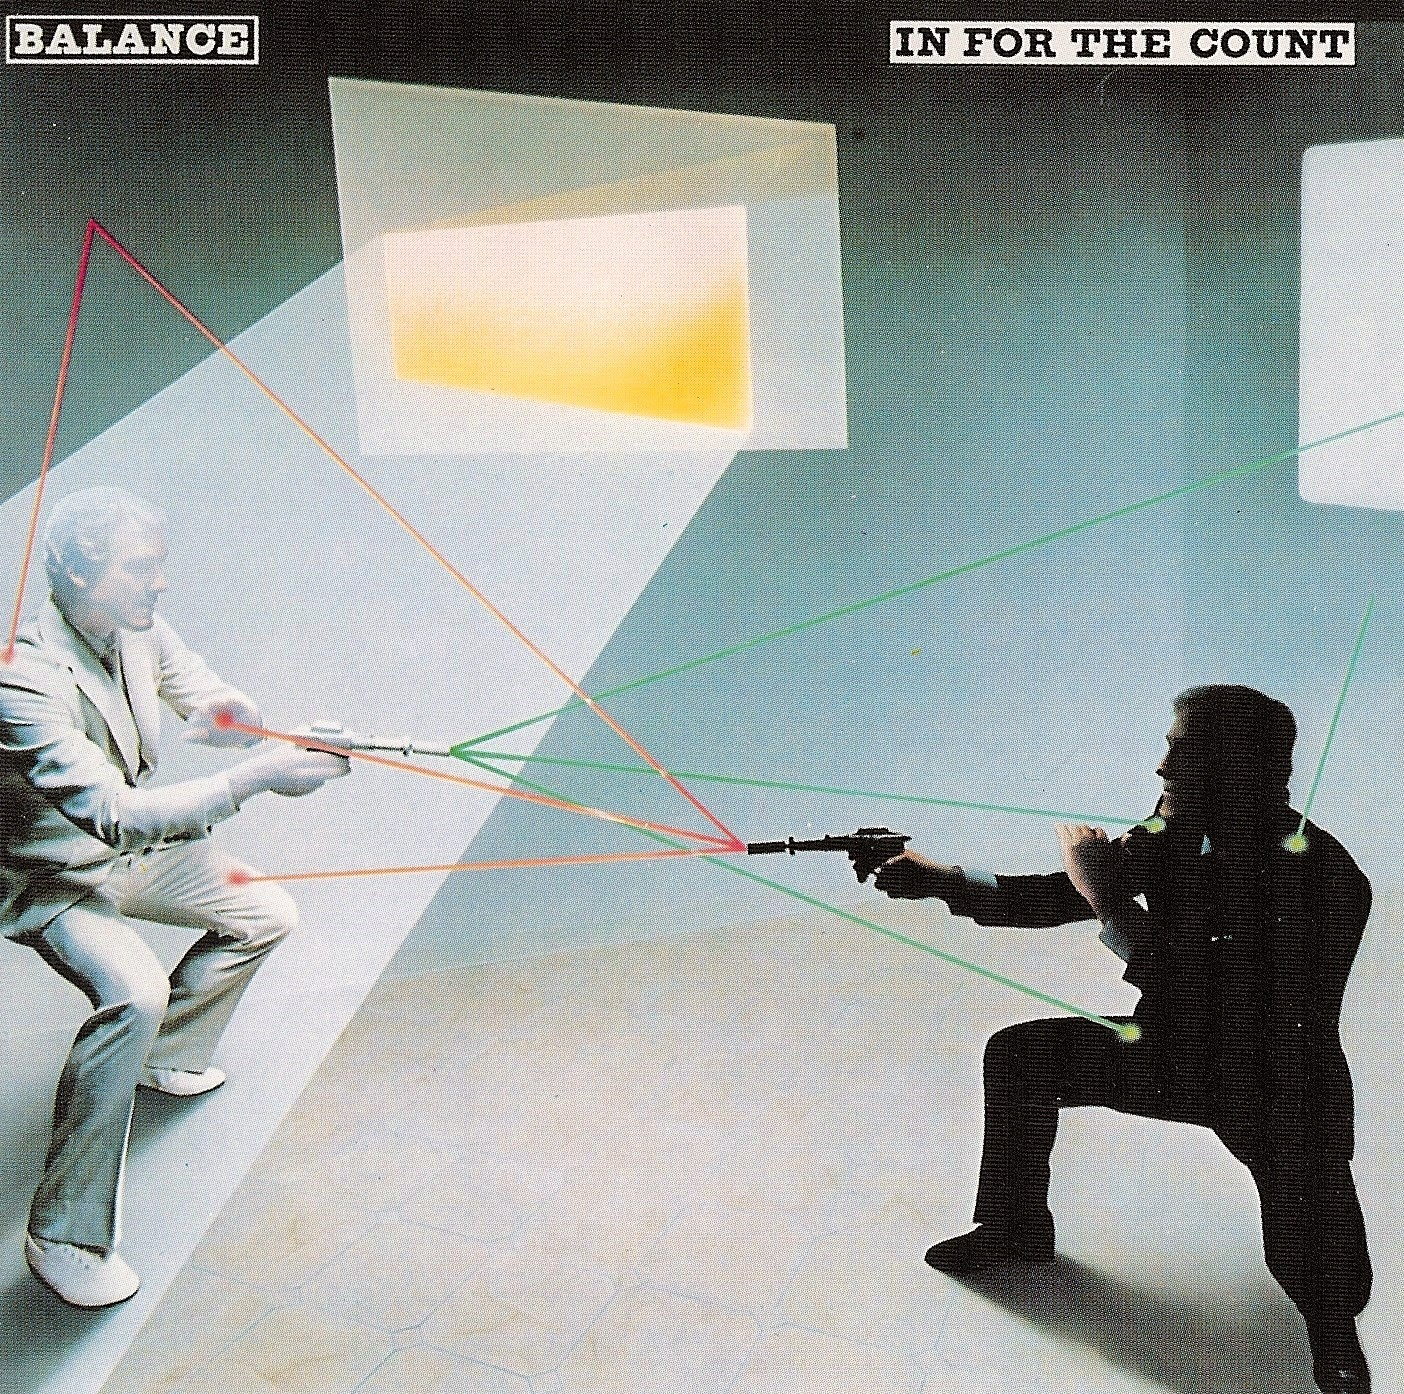 Balance In for the count 1982 aor melodic rock music blogspot albums bands